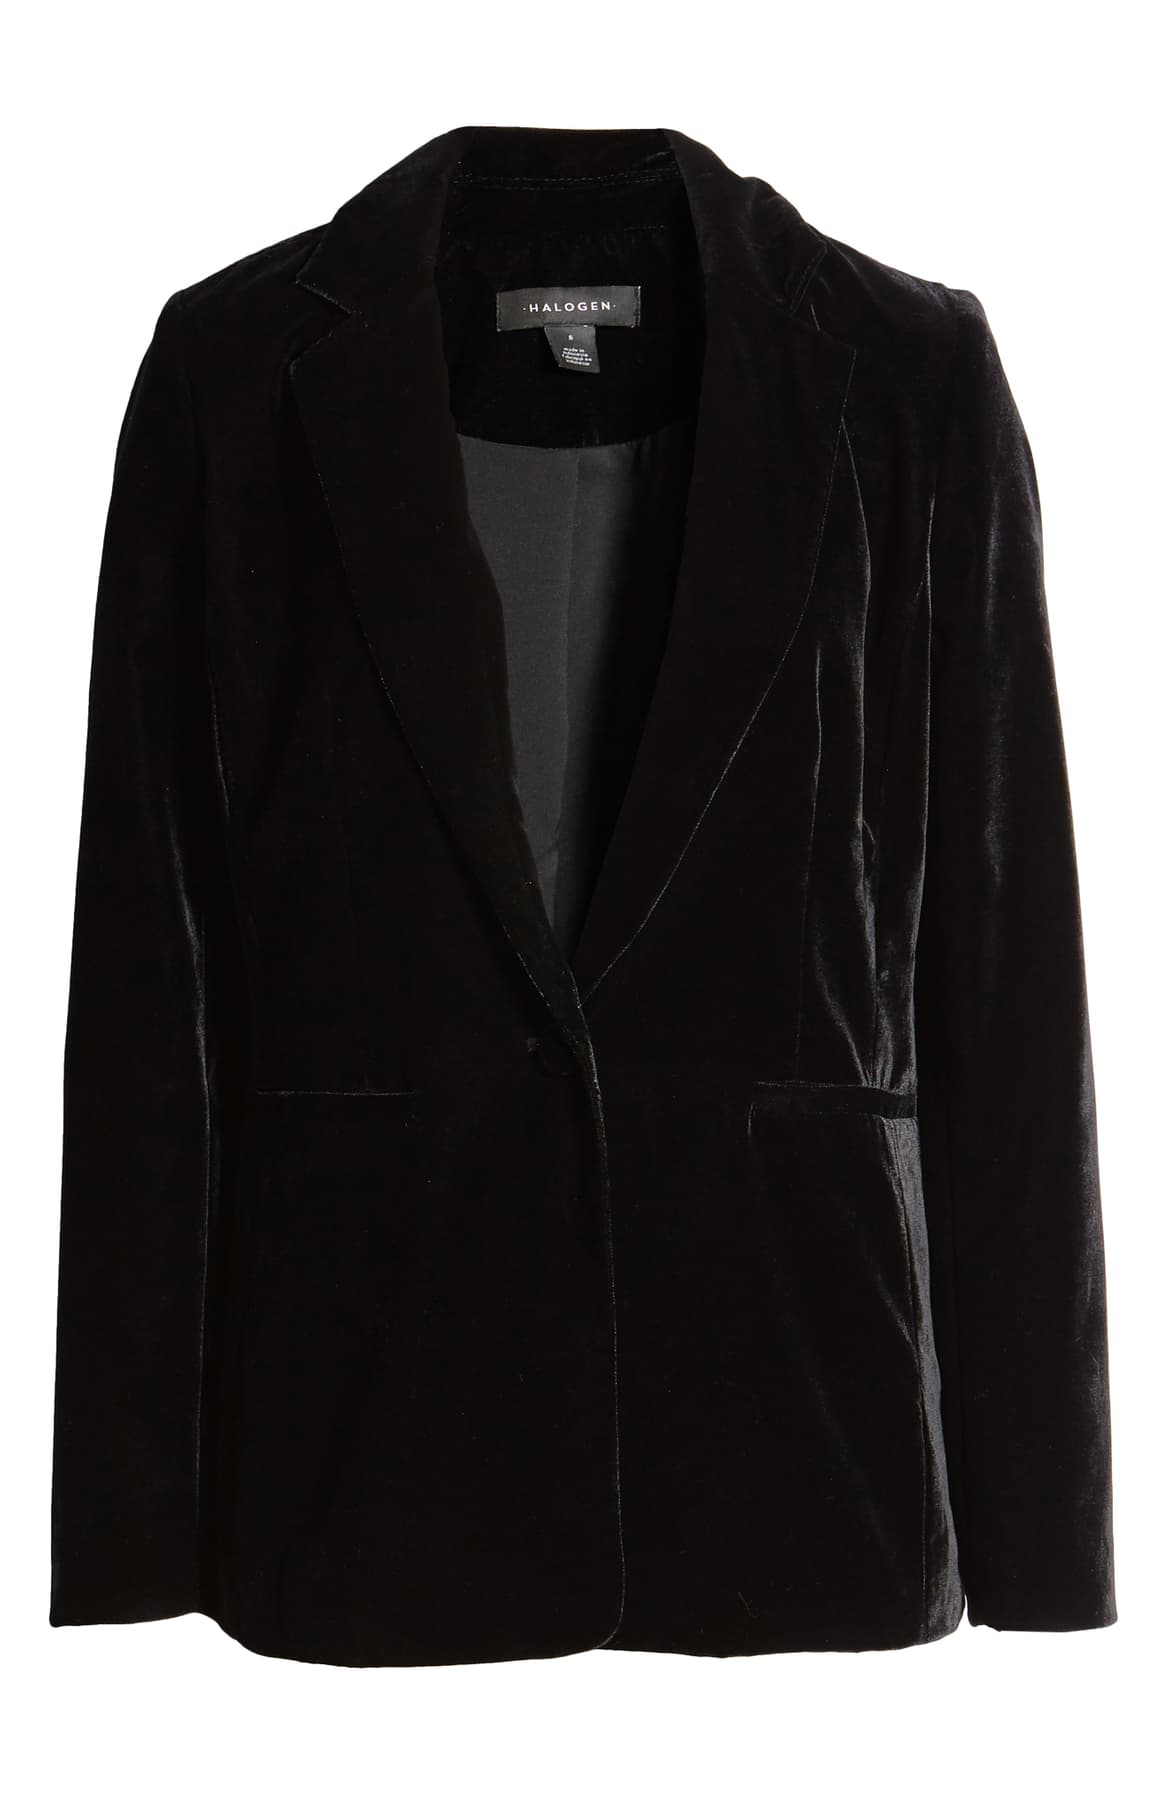 "<a  href=""https://shop.nordstrom.com/s/halogen-velvet-blazer-plus-size/5349342/full?origin=keywordsearch-personalizedsort&breadcrumb=Home%2FAll%20Results&color=black"" target=""_blank"" title=""https://shop.nordstrom.com/s/halogen-velvet-blazer-plus-size/5349342/full?origin=keywordsearch-personalizedsort&breadcrumb=Home%2FAll%20Results&color=black"">Halogen Velvet Blazer - $99</a>. From cozy to gold hued to tailored, Nordstrom has the hottest trends for getting glam this holiday season! (Credit: Nordstrom)"